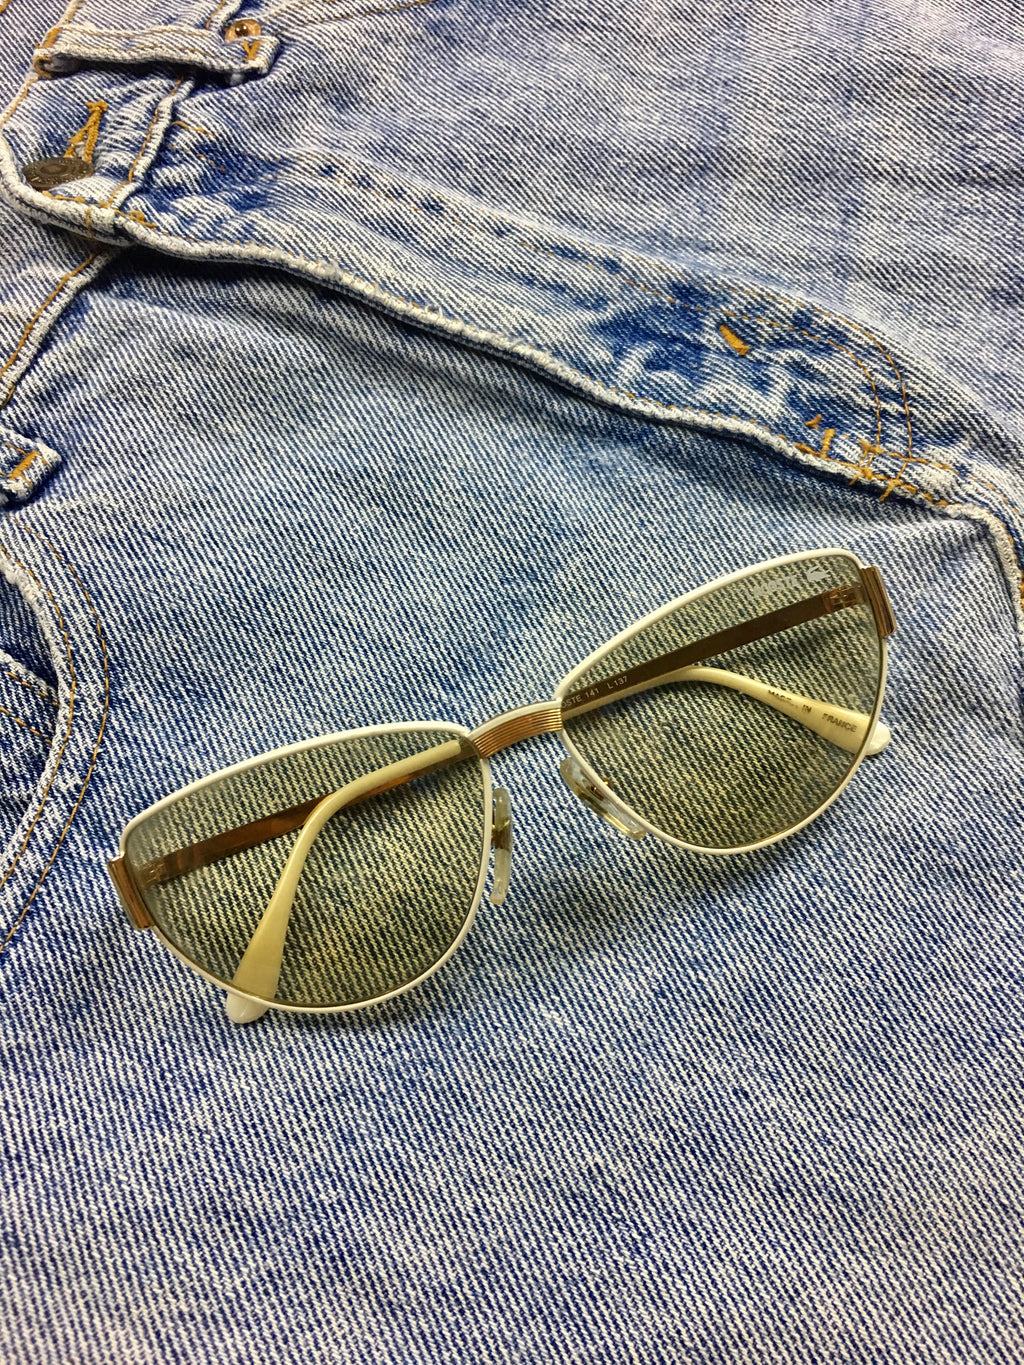 True Vintage Sunglasses - 1970s White Lacoste Sunglasses